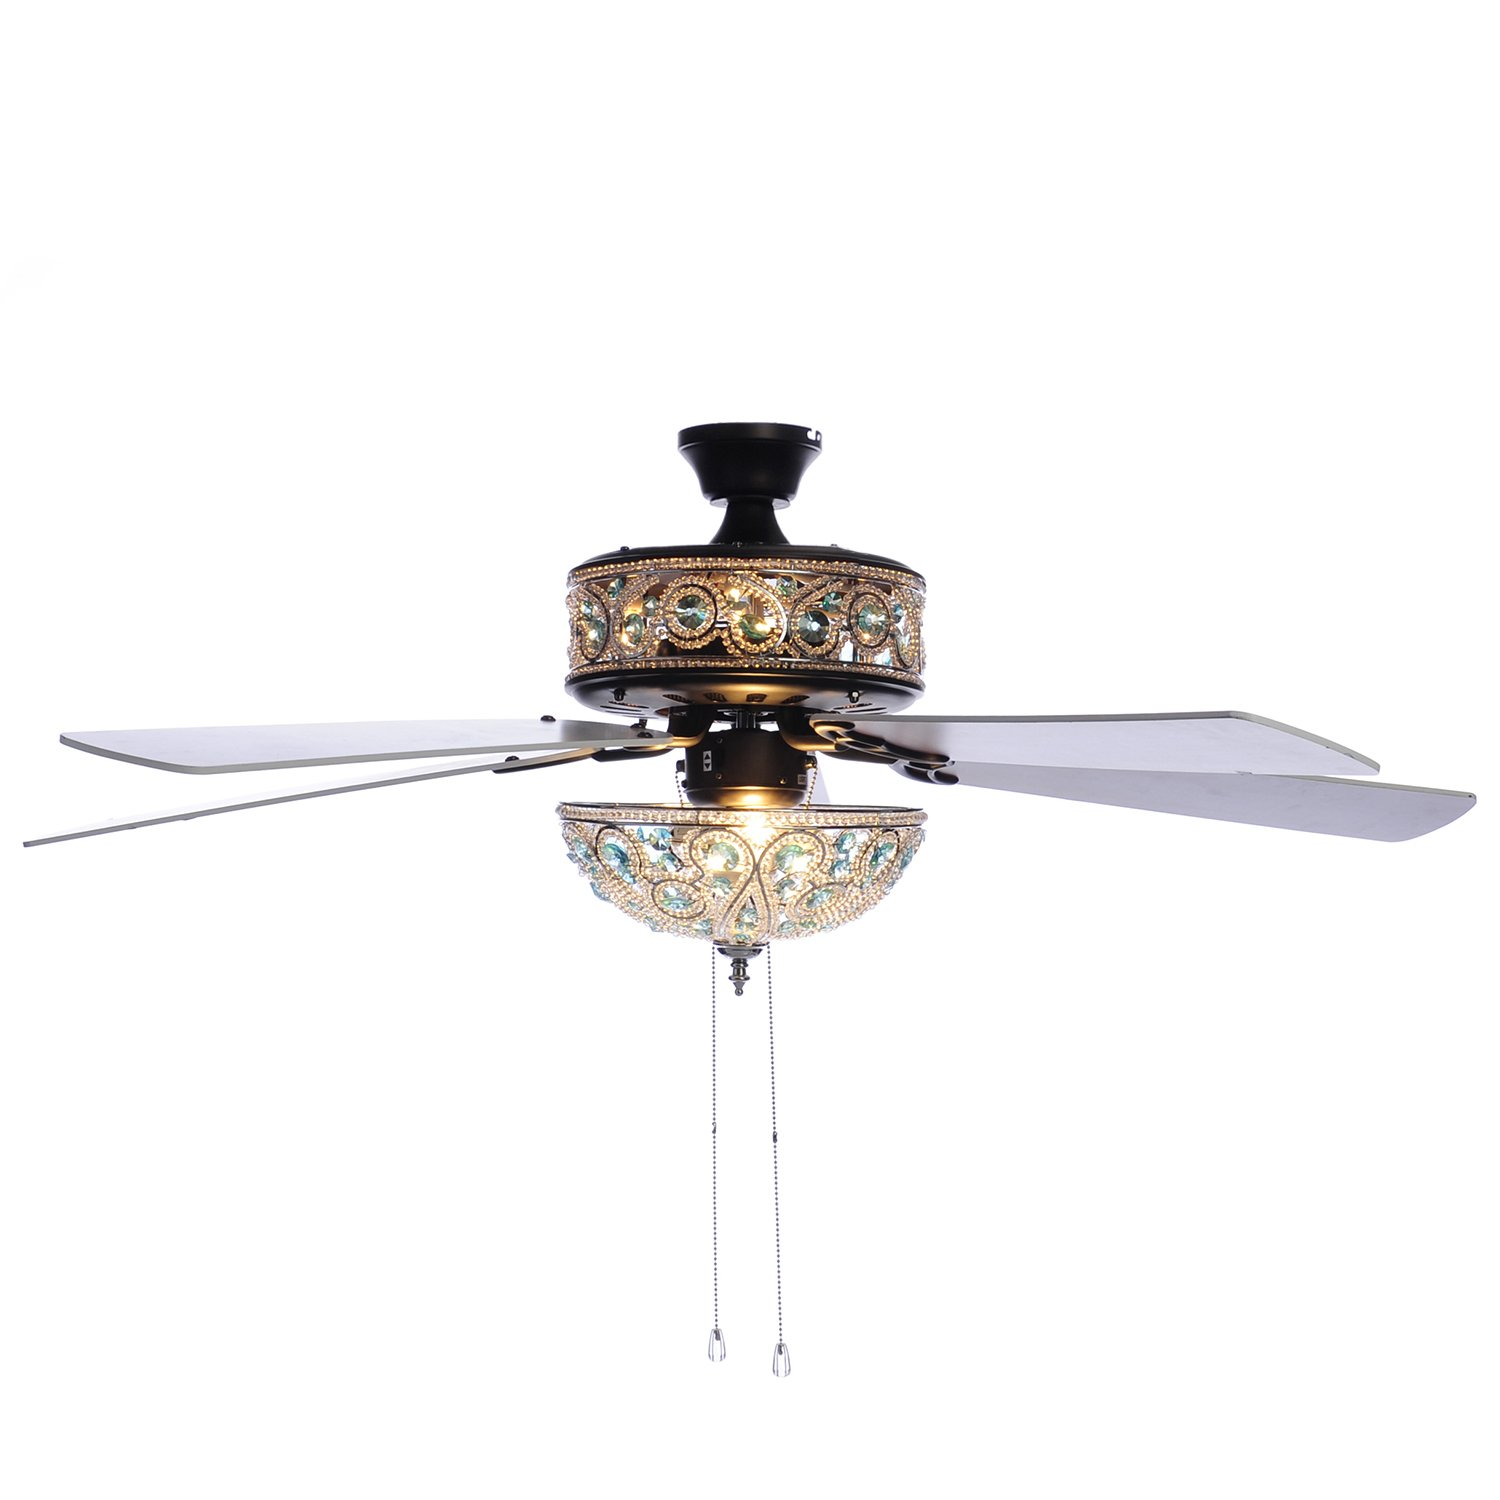 50'' Chandelier Crystal Ceiling Fan with Remote Control - Turquoise by River of Goods